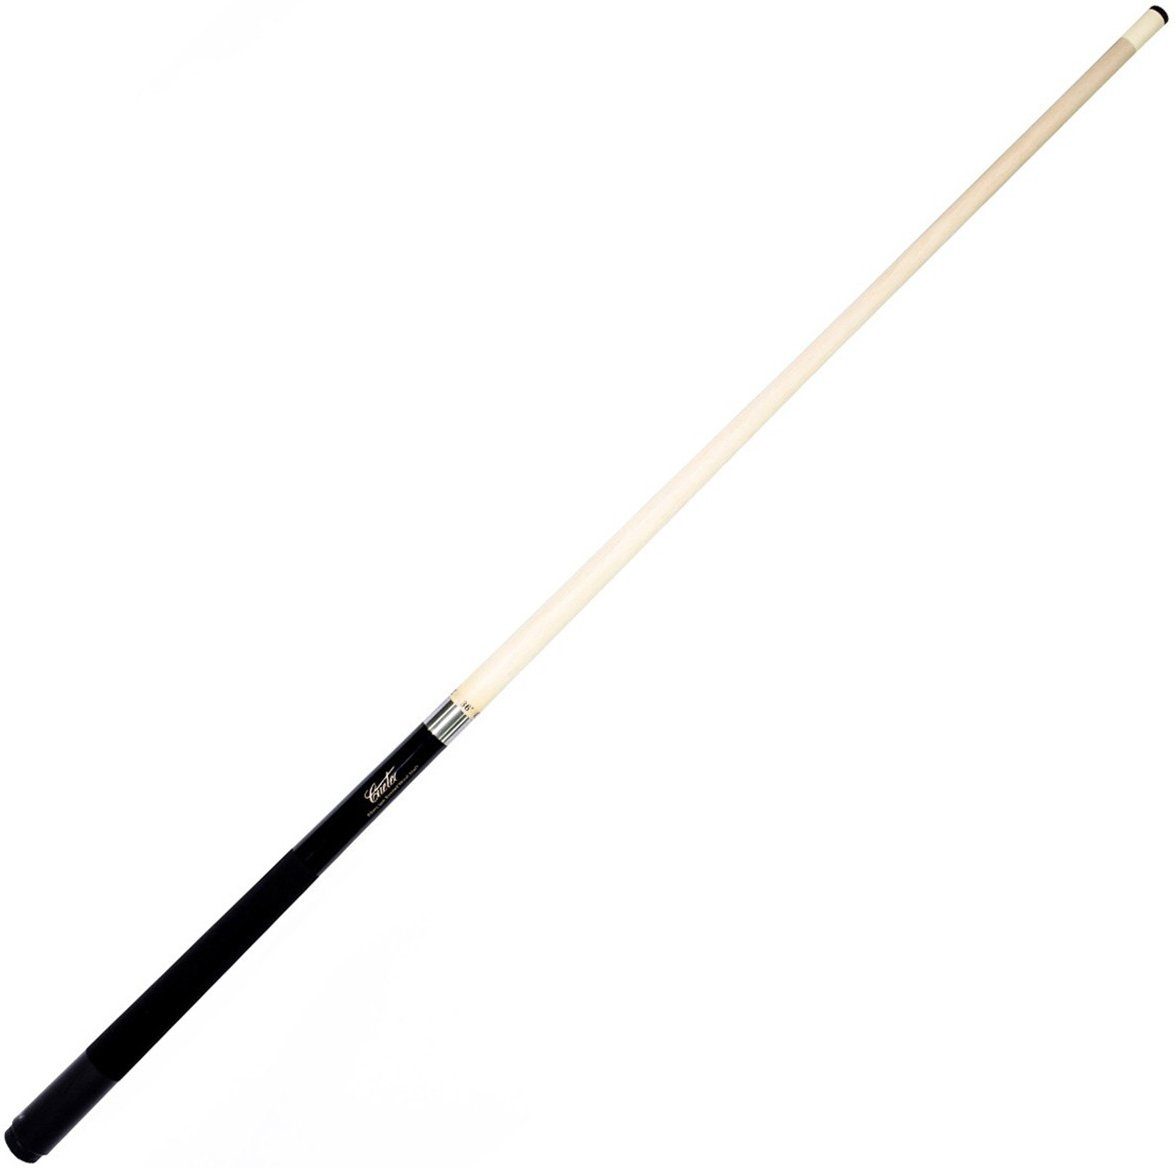 Cuetec Professional Series Billiard Cue IMP 12-99521-Parent